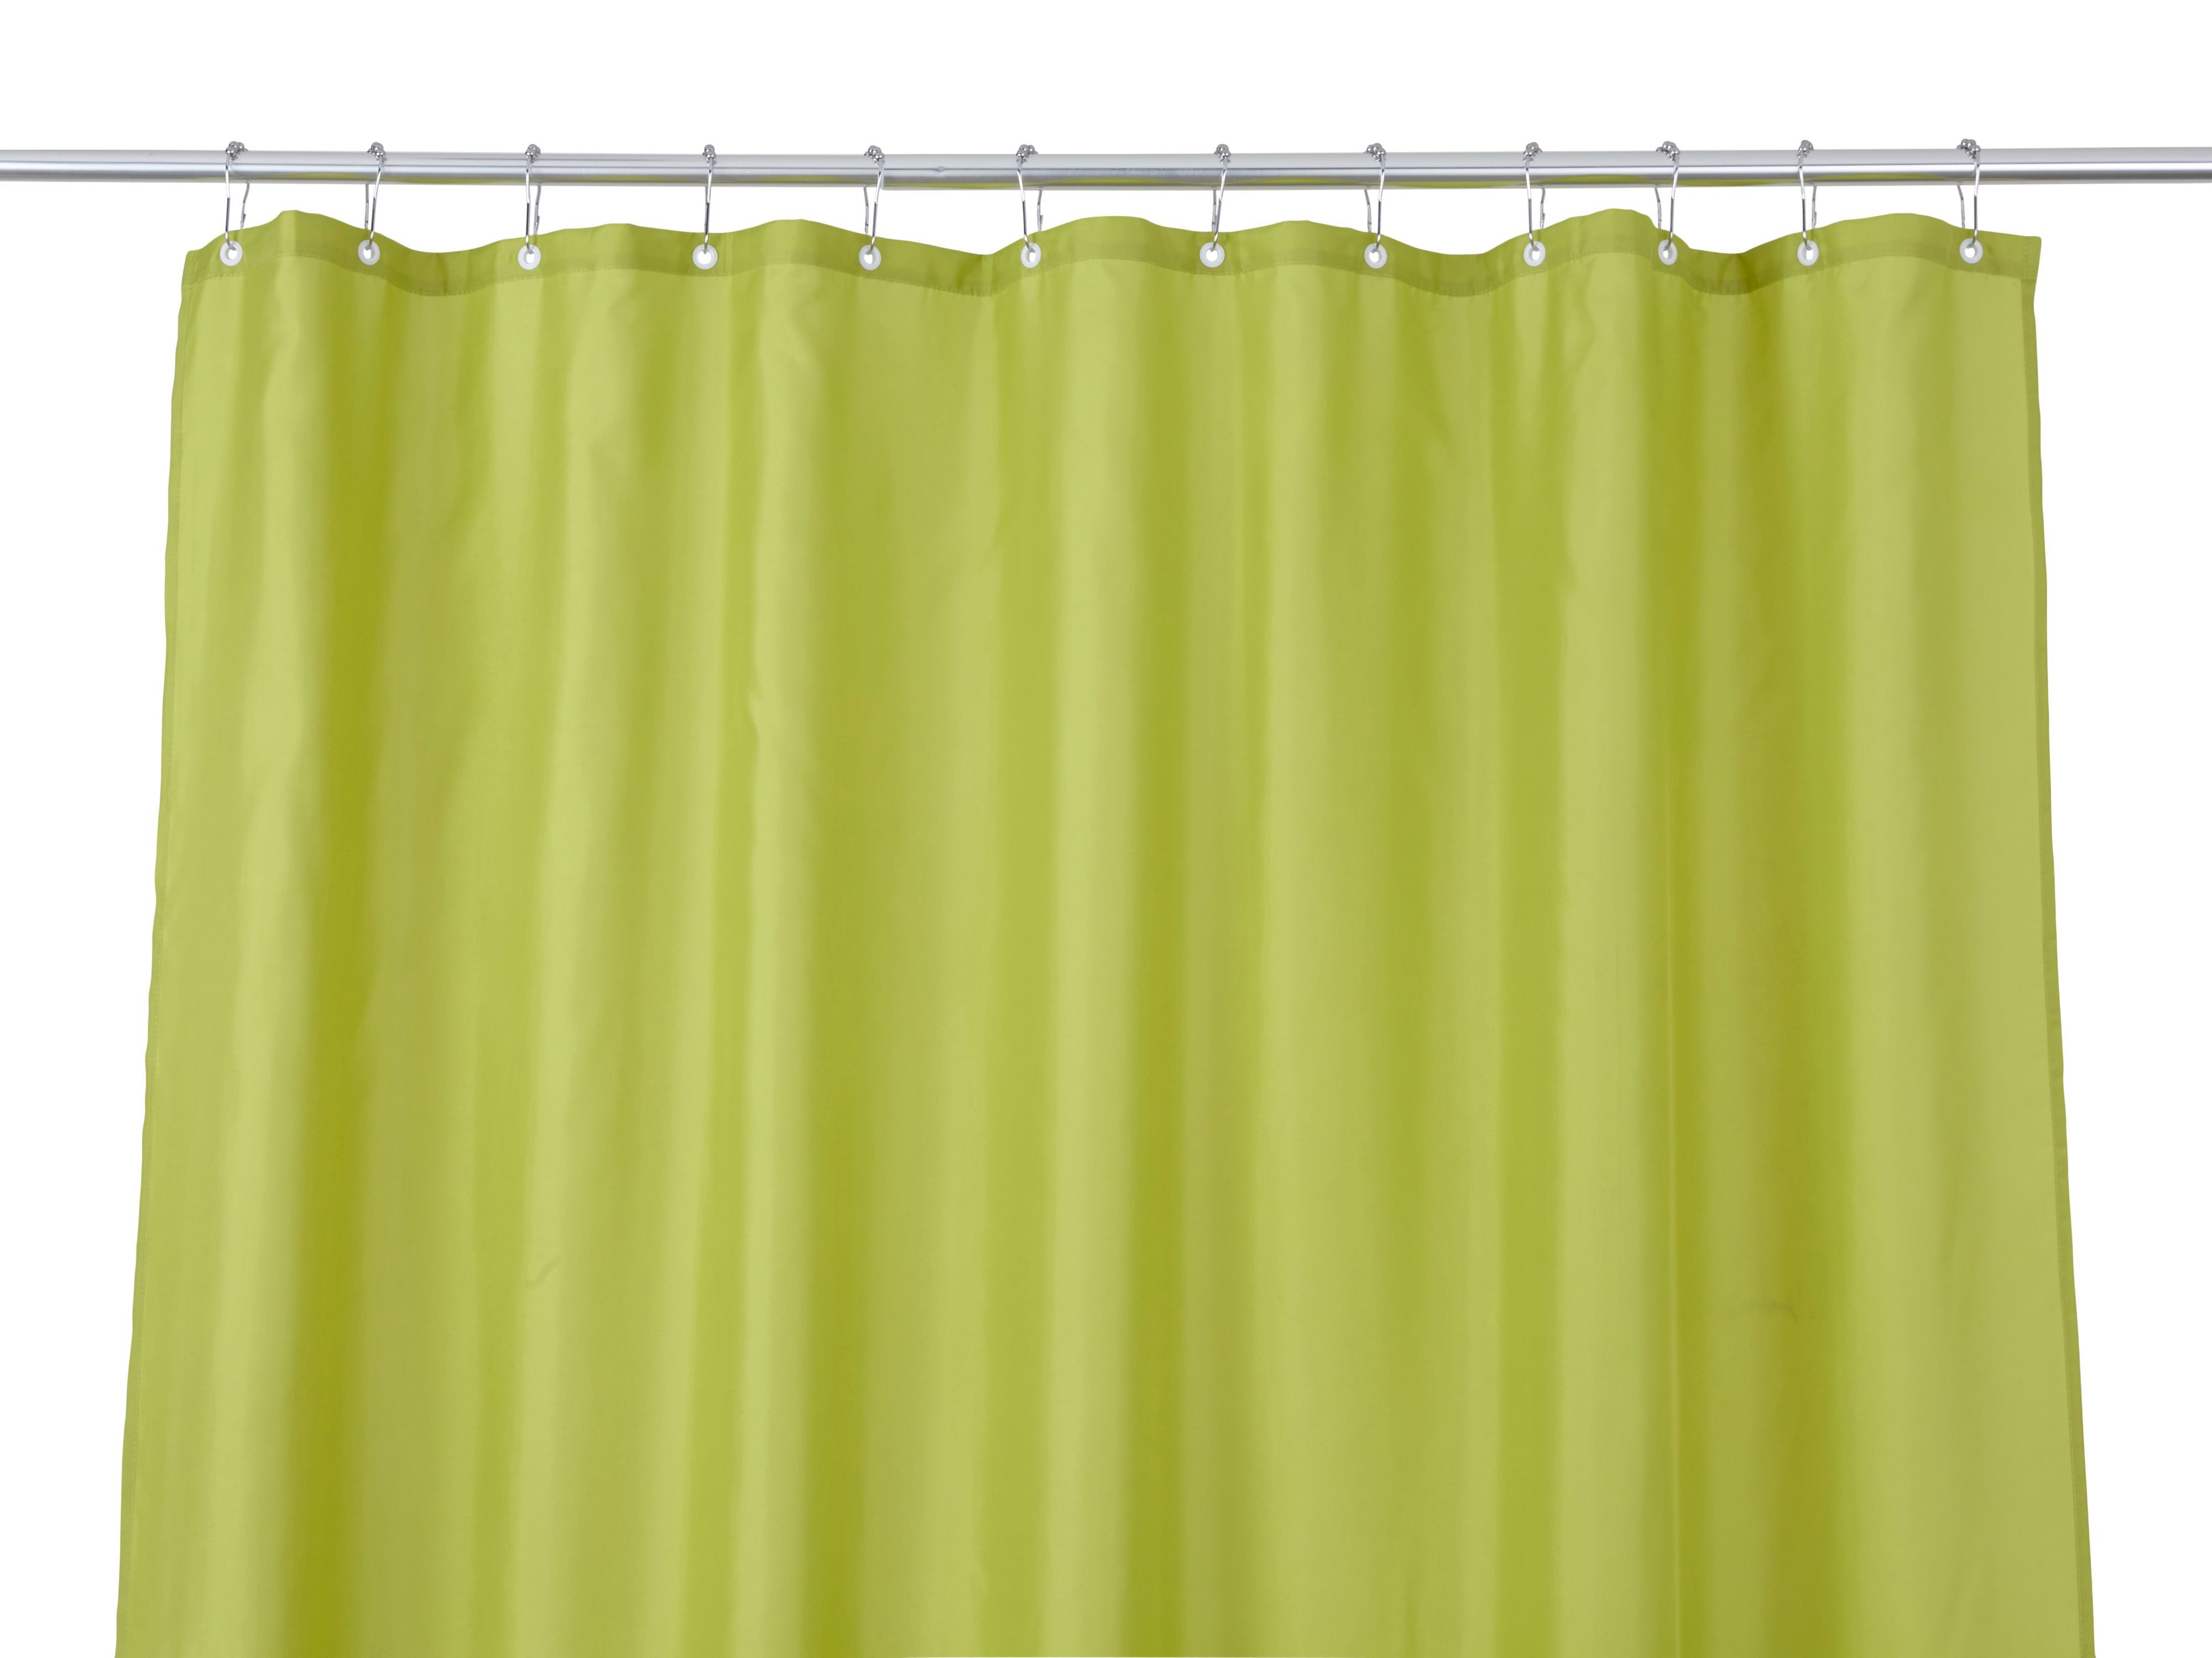 Cooke & Lewis Diani Bamboo Shower Curtain (l)1800 Mm